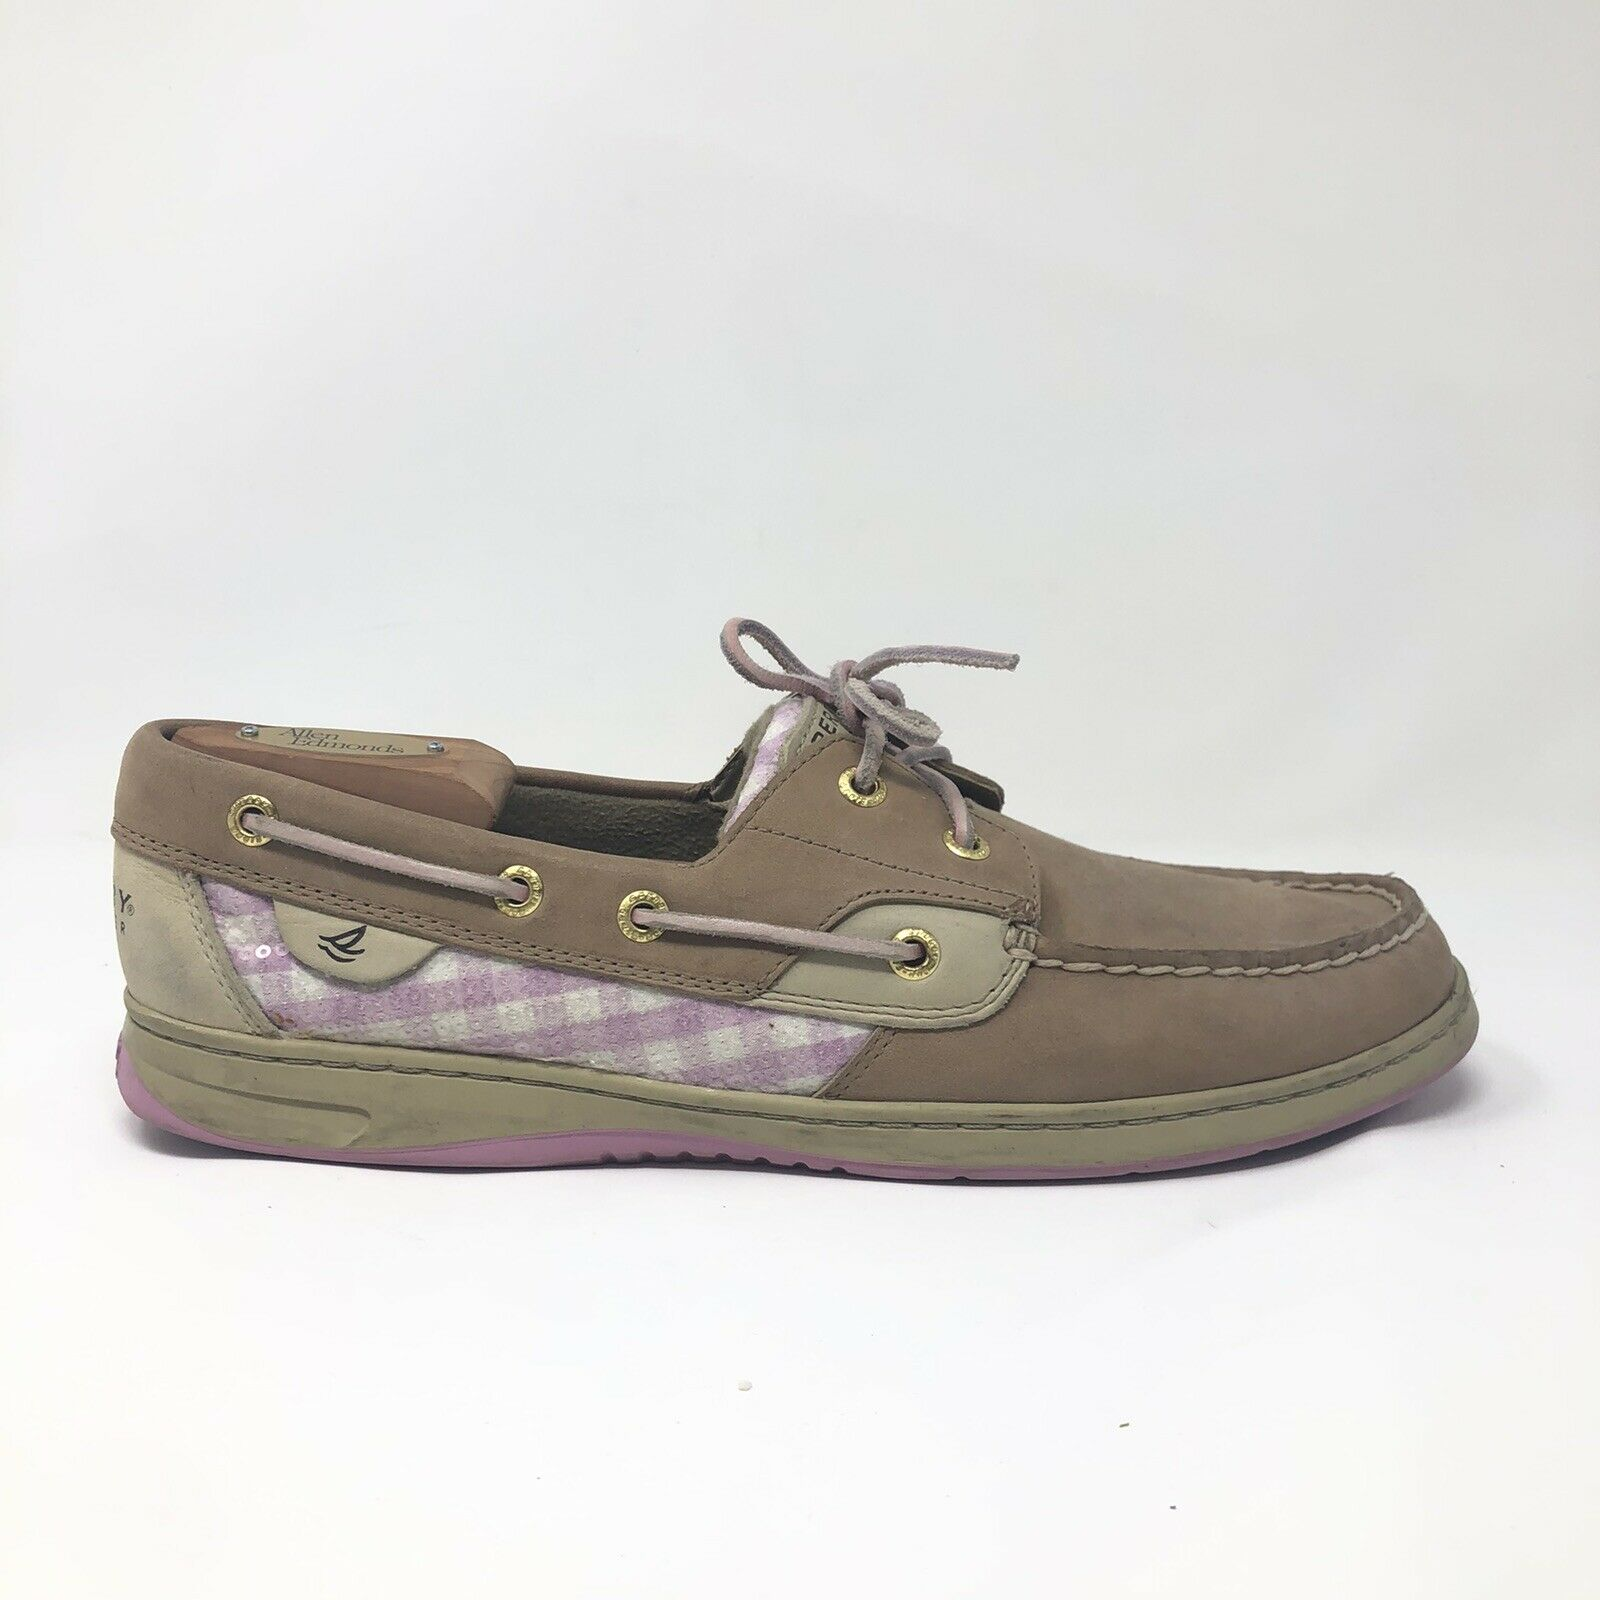 Sperry Top-Sider Women's Loafer Fish Boat Shoes Tan Suede Pink Sequin Sz 11 VGC